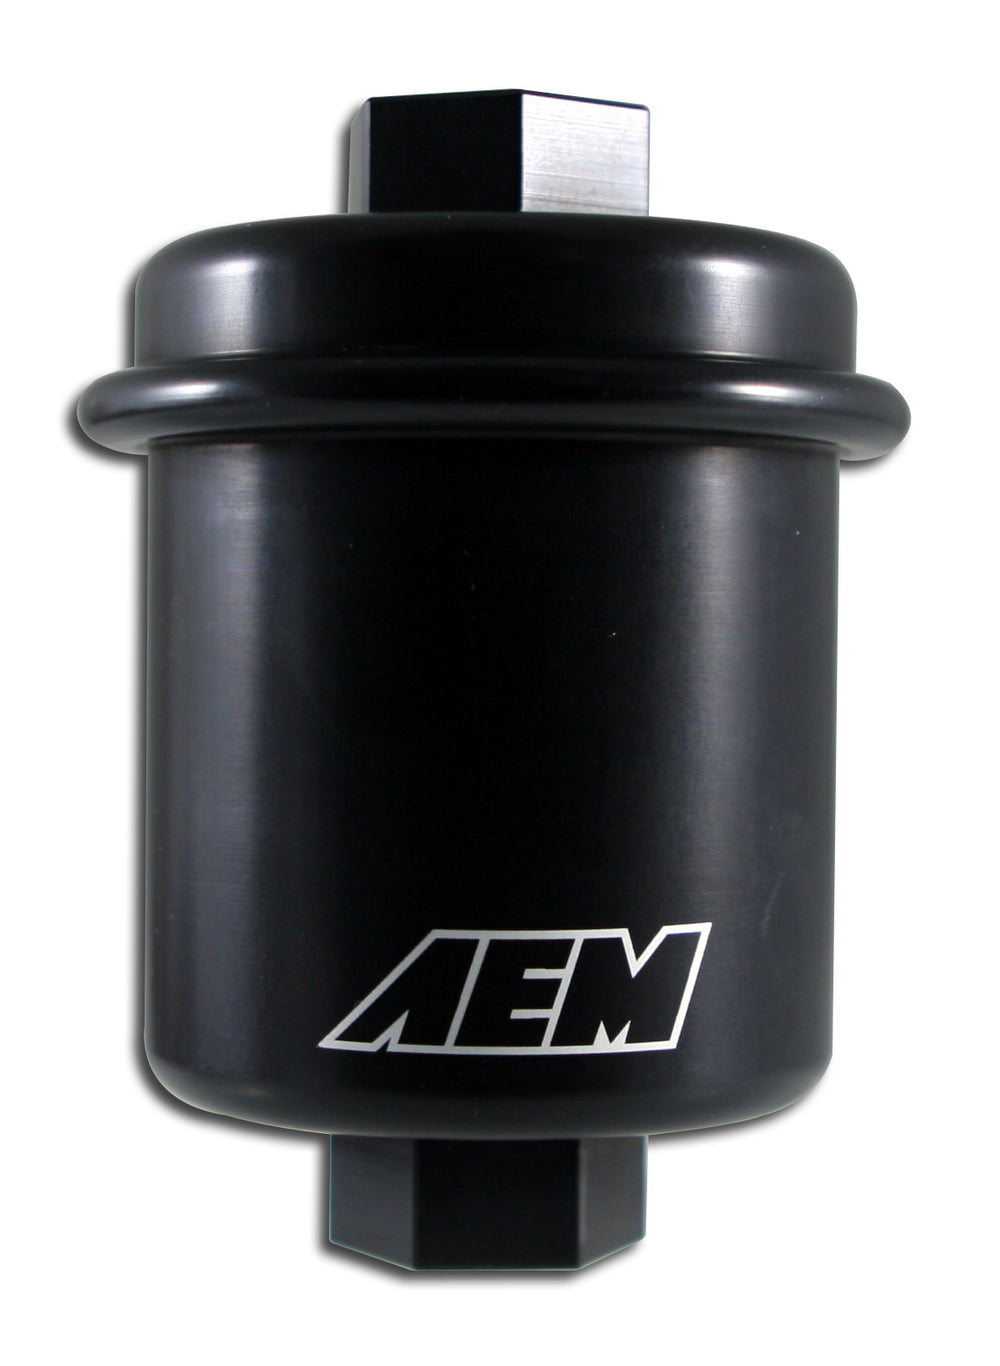 High Volume Fuel Filter, Black Anodized, Fits Acura & Honda, Inlet: 14mm X 1.5, Outlet: 12mm X 1.25